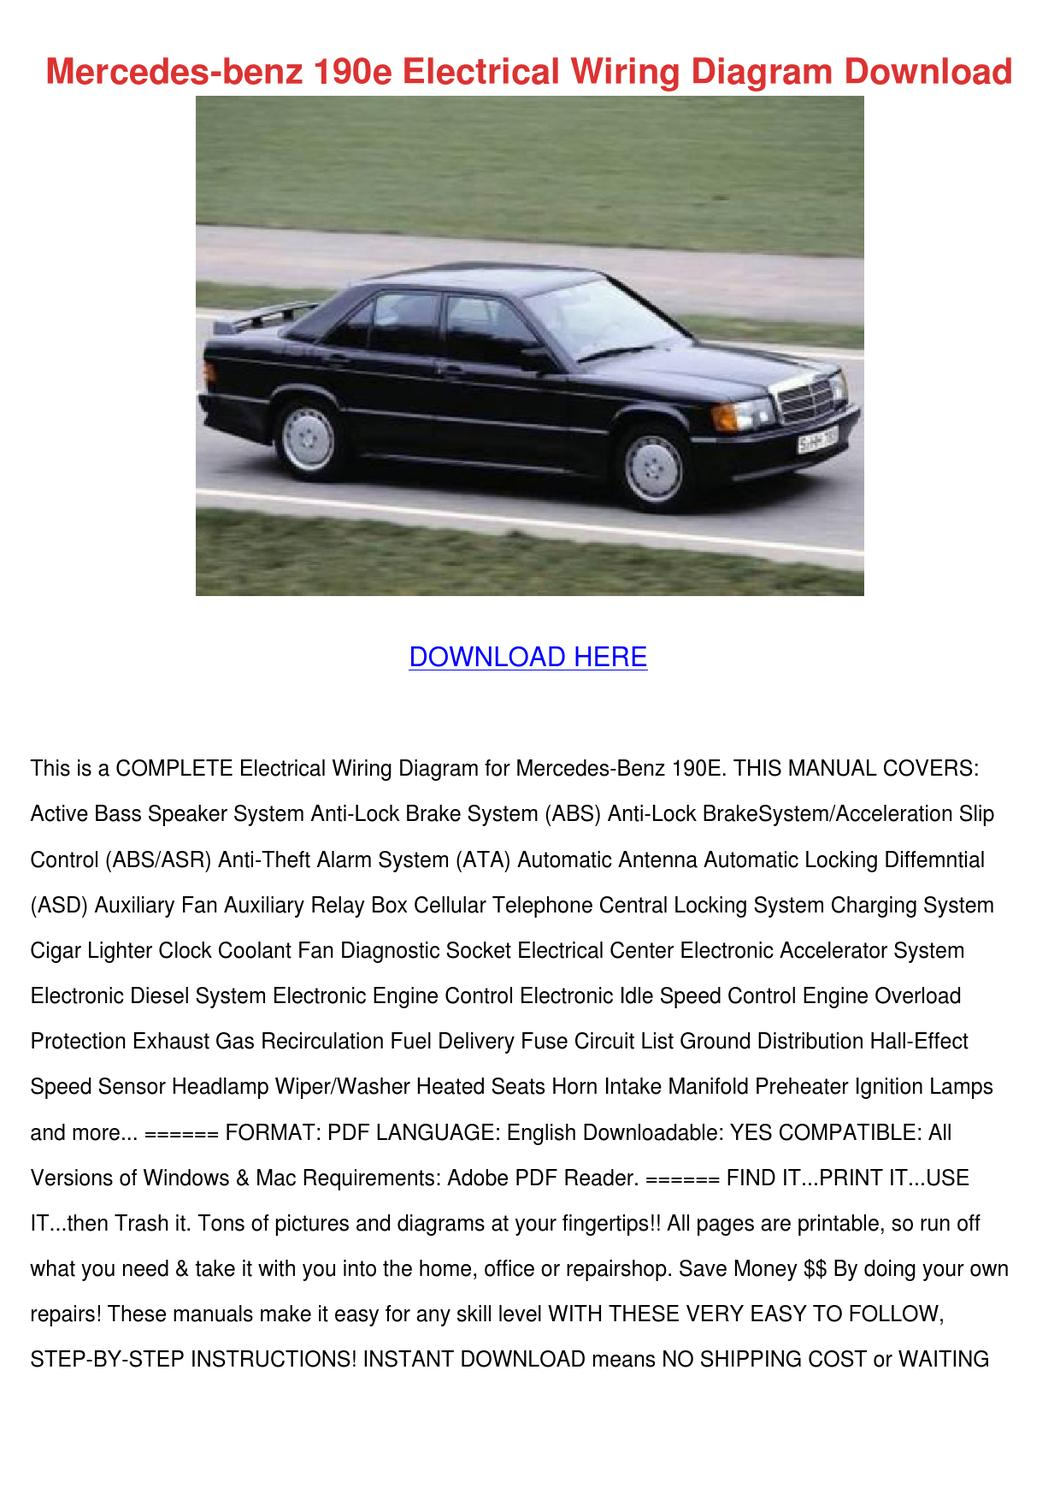 hight resolution of mercedes benz 190e electrical wiring diagram by arleneadam issuu